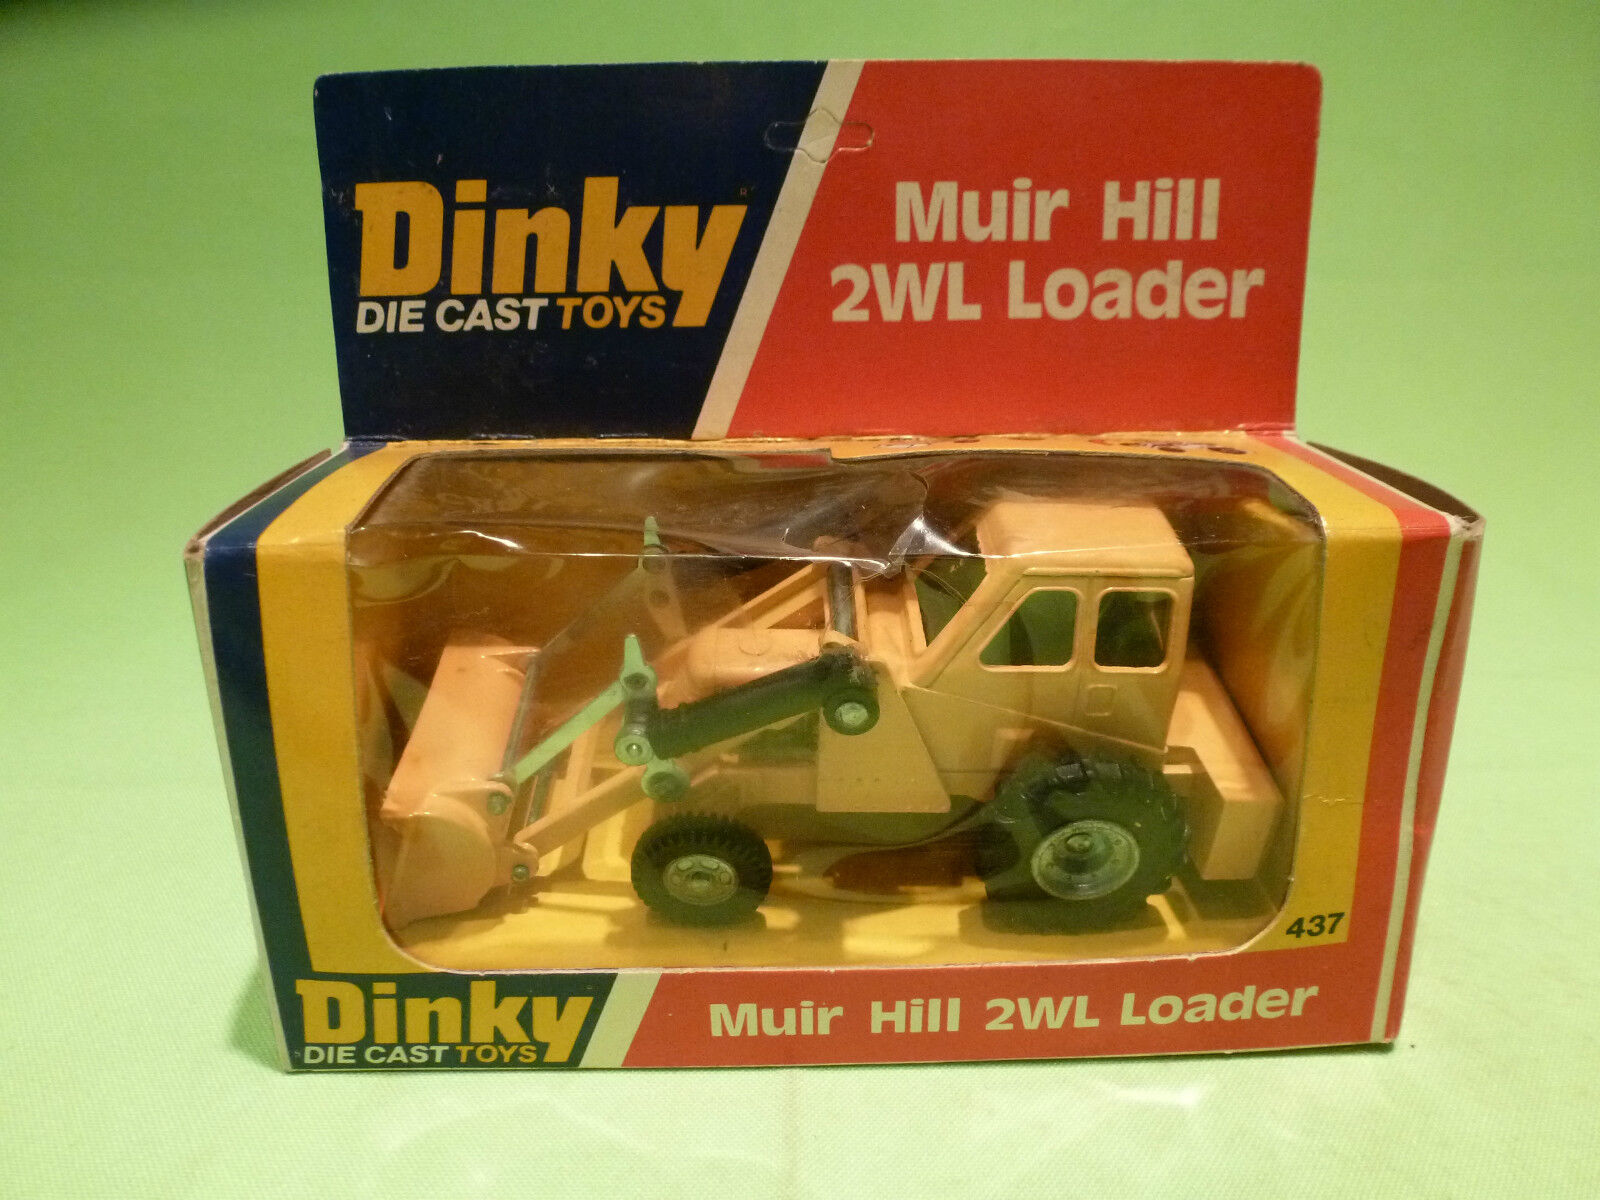 DINKY TOYS 437 MUIR HILL 2WL LOADER - RARE RARE RARE SELTEN - GOOD CONDITION IN BOX 9eb33c